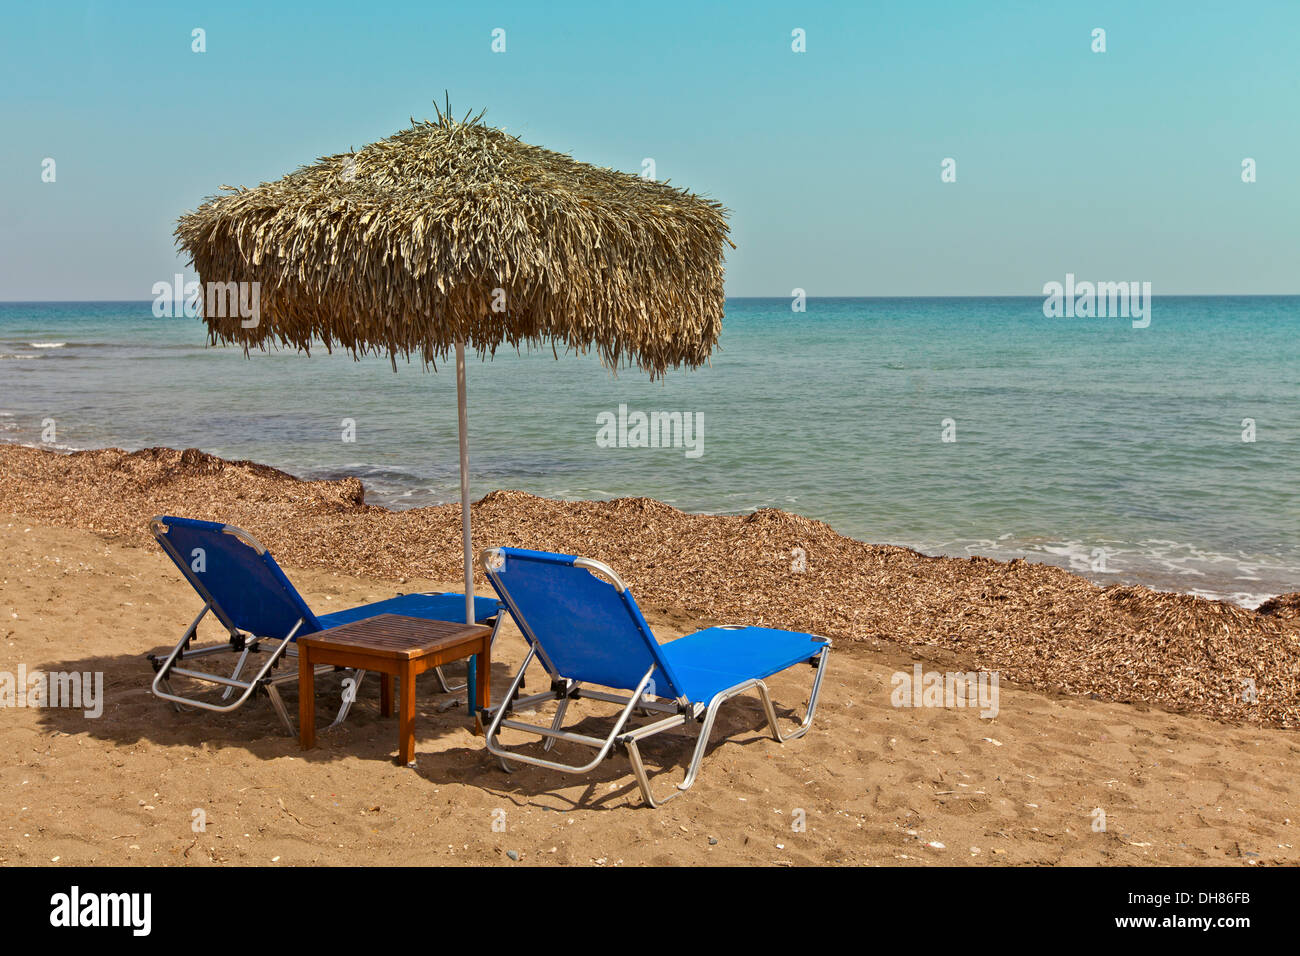 Beach scene with two sun loungers and sunshade. - Stock Image